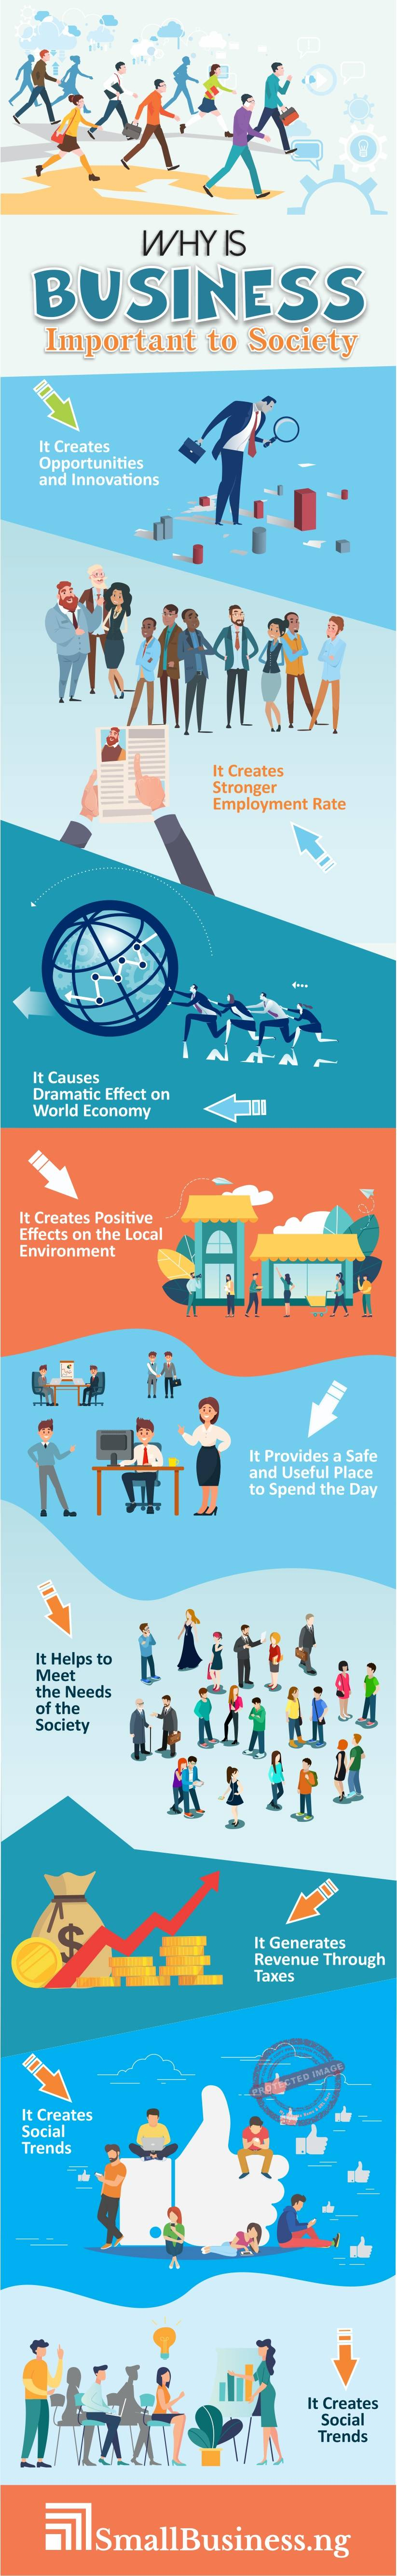 Why is Business Important to society Infographic